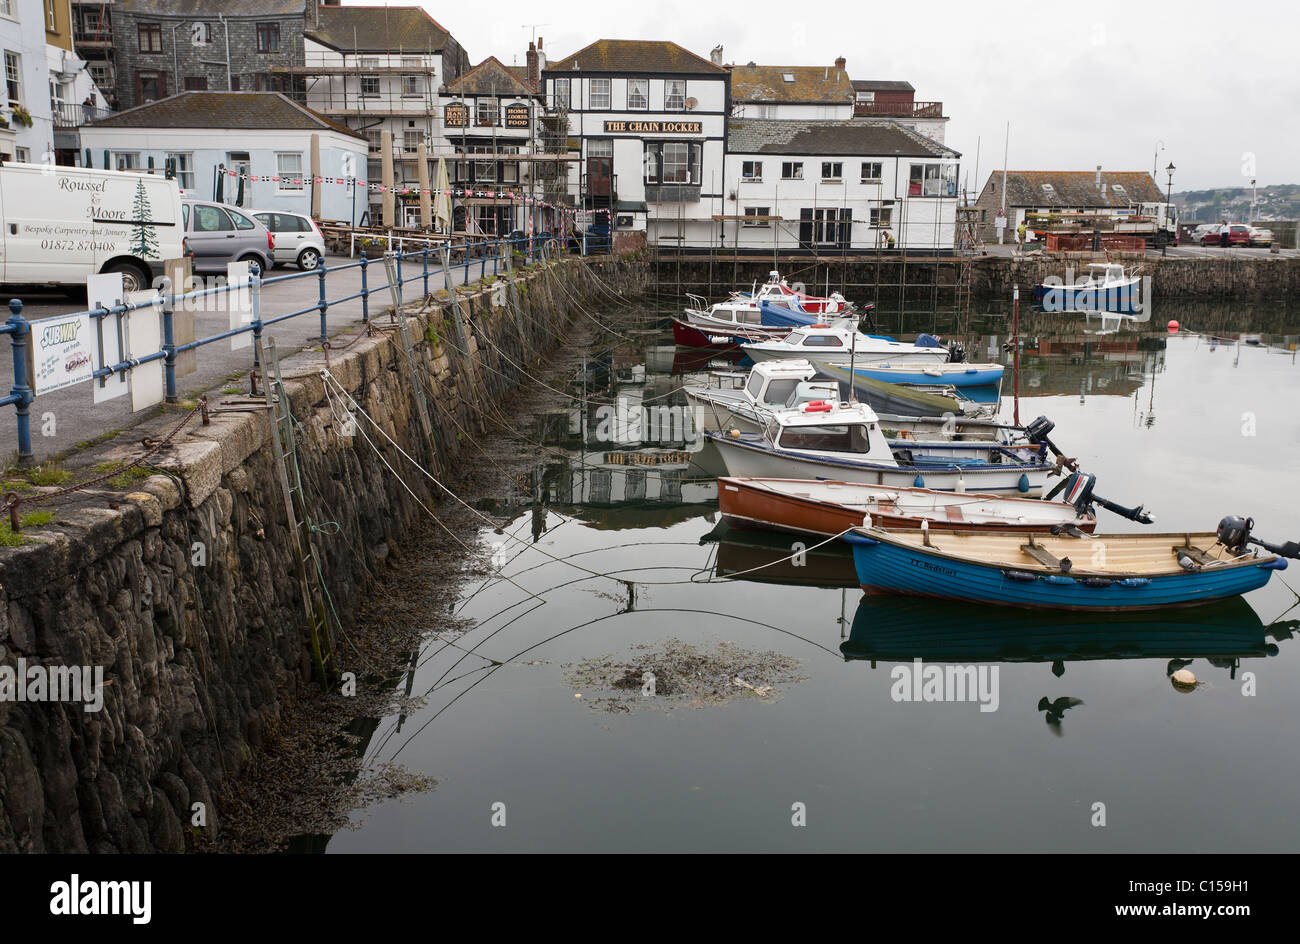 Small Boat Harbour at Falmouth. Small fishing boats tied up to the government dock at the inner harbour of Falmouth. - Stock Image